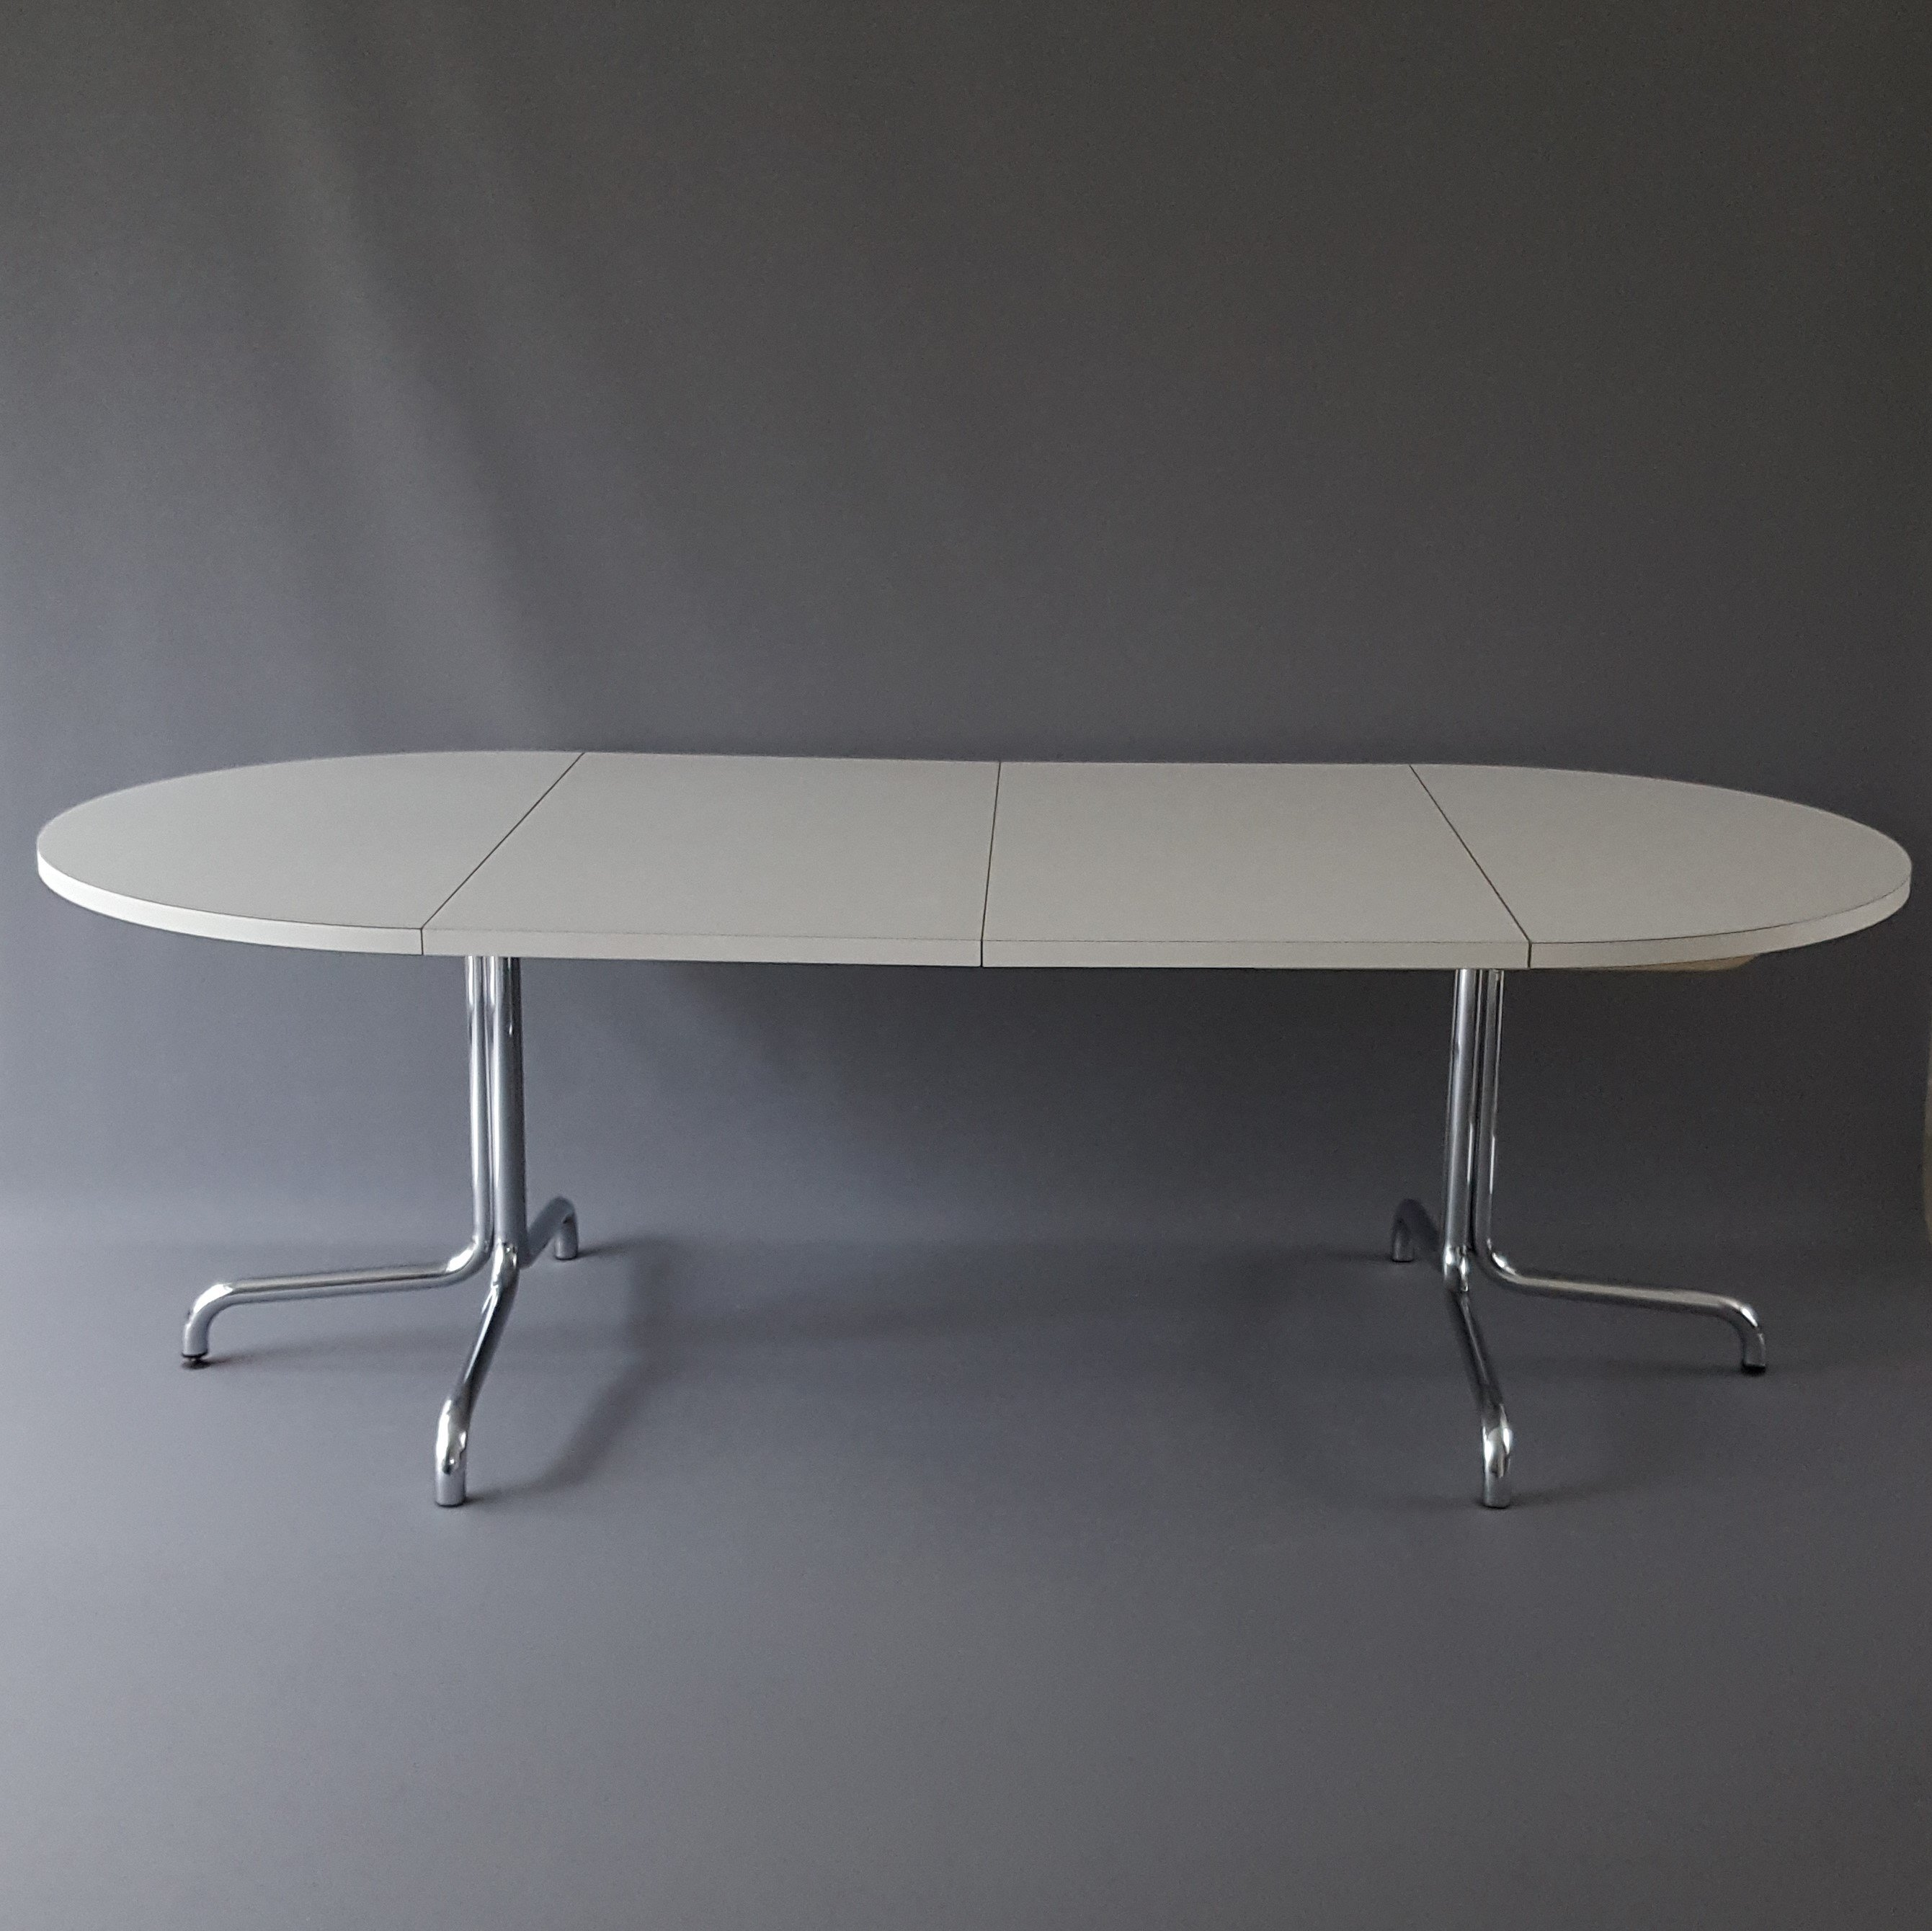 S1052 dining table by thonet 1980s 64463 for Table thonet